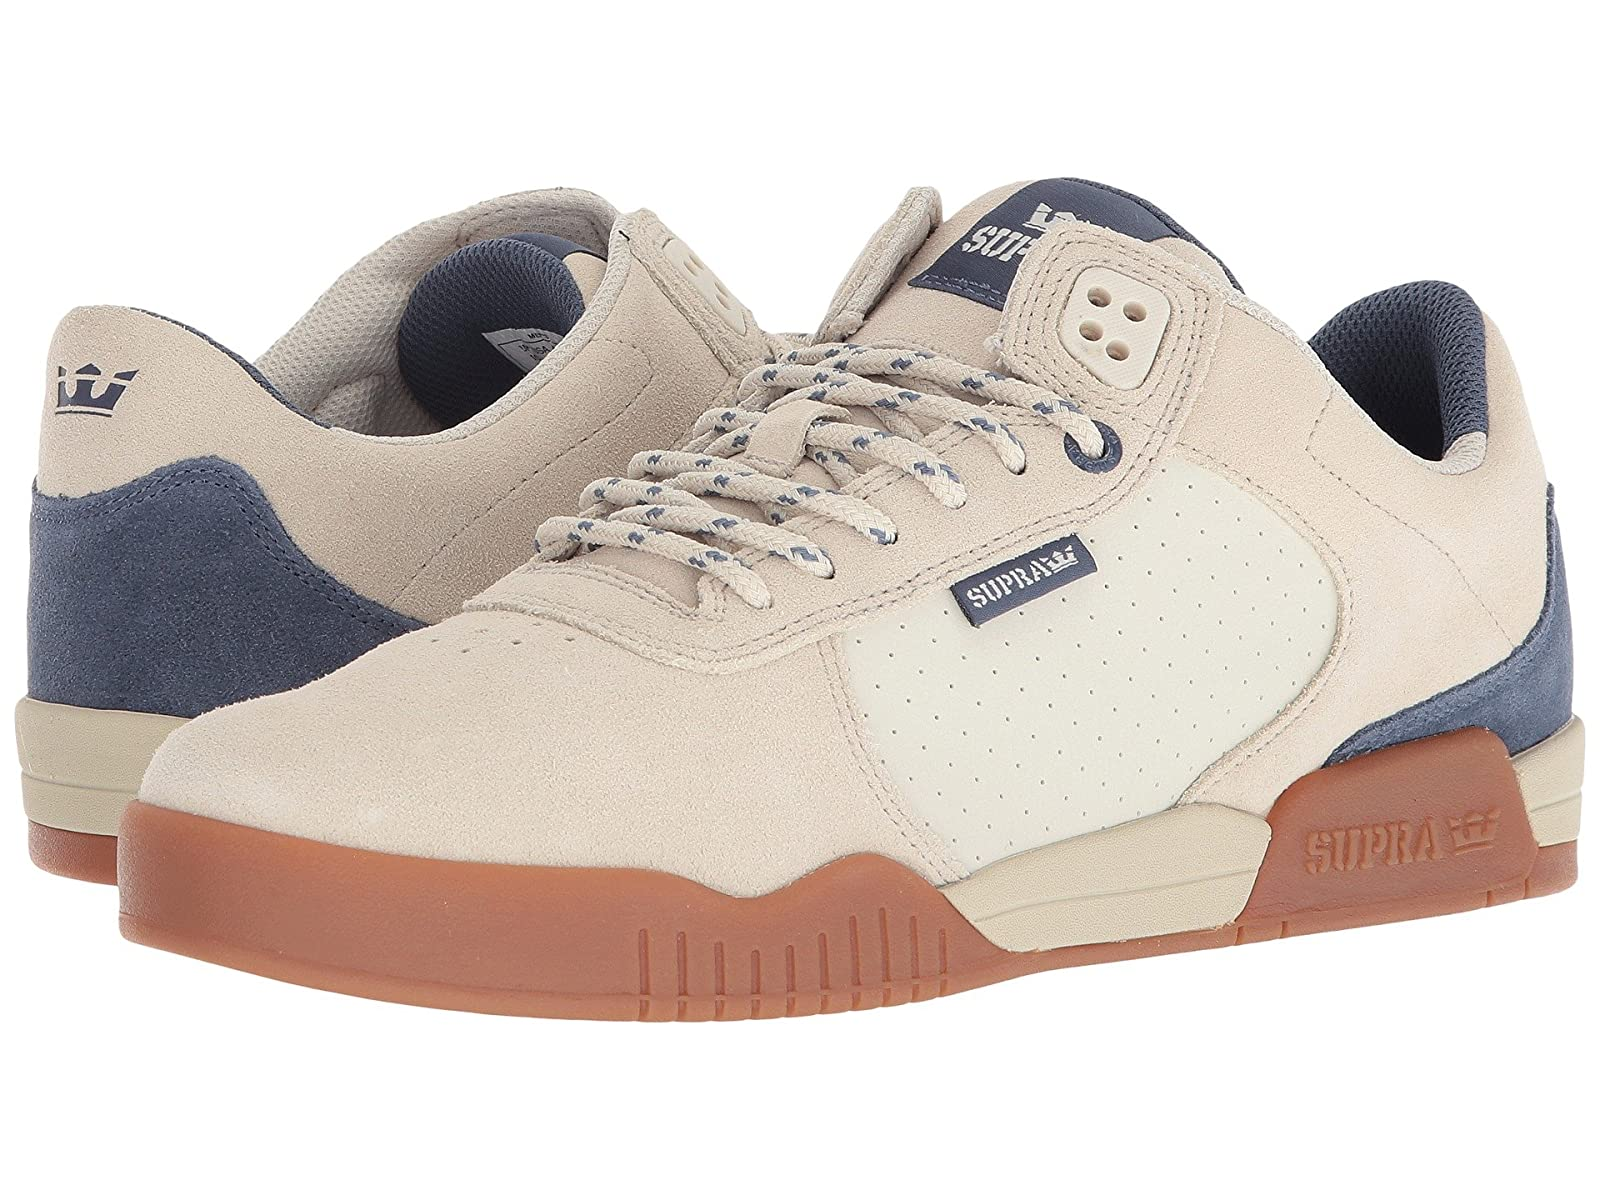 Supra EllingtonCheap and distinctive eye-catching shoes